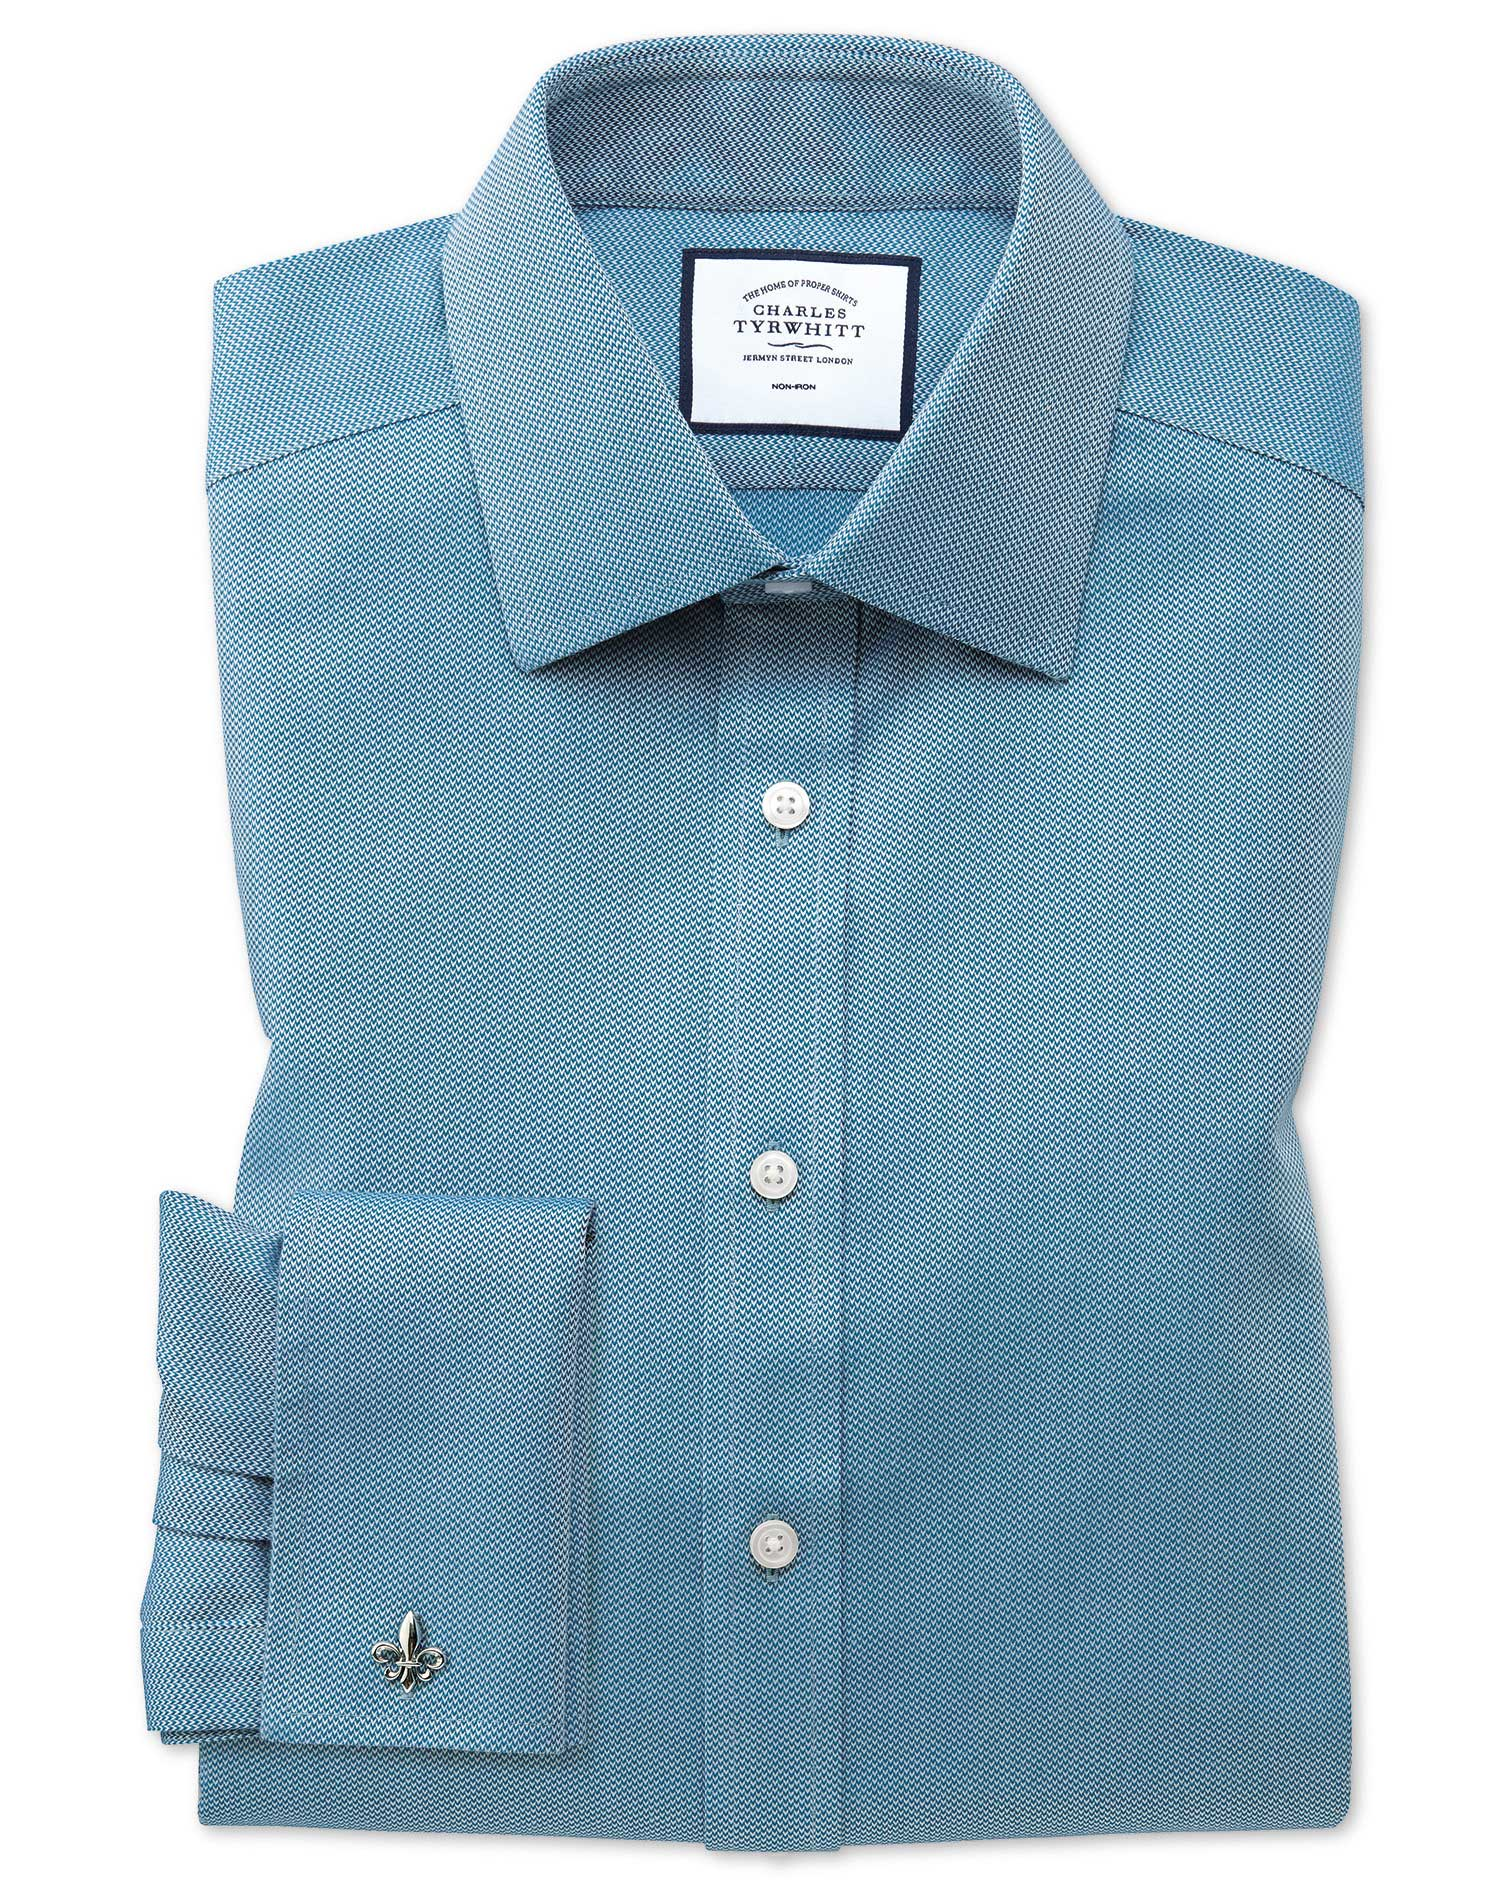 Classic Fit Non-Iron Teal Arrow Weave Cotton Formal Shirt Single Cuff Size 16.5/33 by Charles Tyrwhi